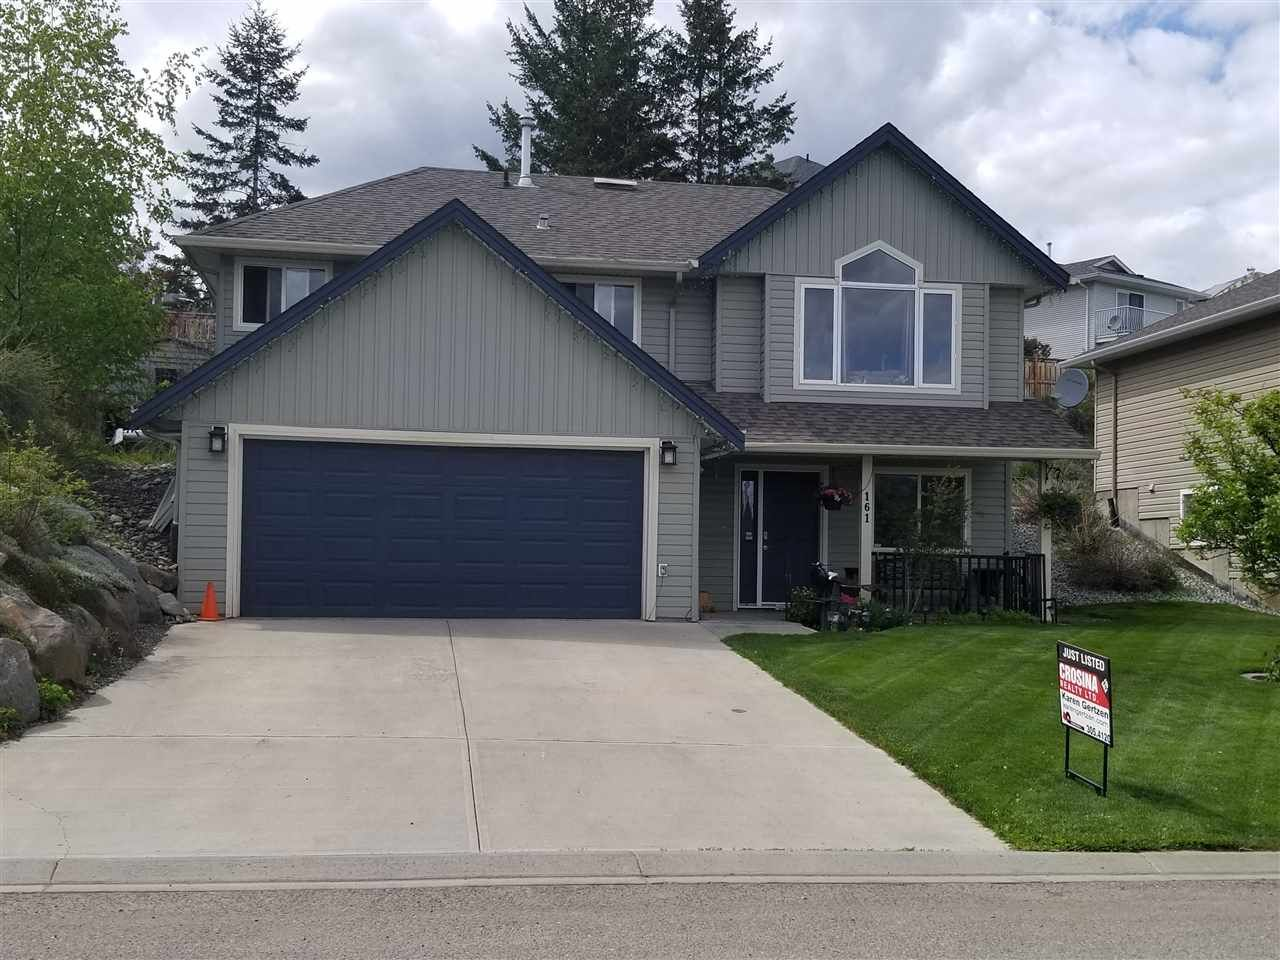 """Main Photo: 161 FOSTER Way in Williams Lake: Williams Lake - City House for sale in """"WESTRIDGE"""" (Williams Lake (Zone 27))  : MLS®# R2370481"""